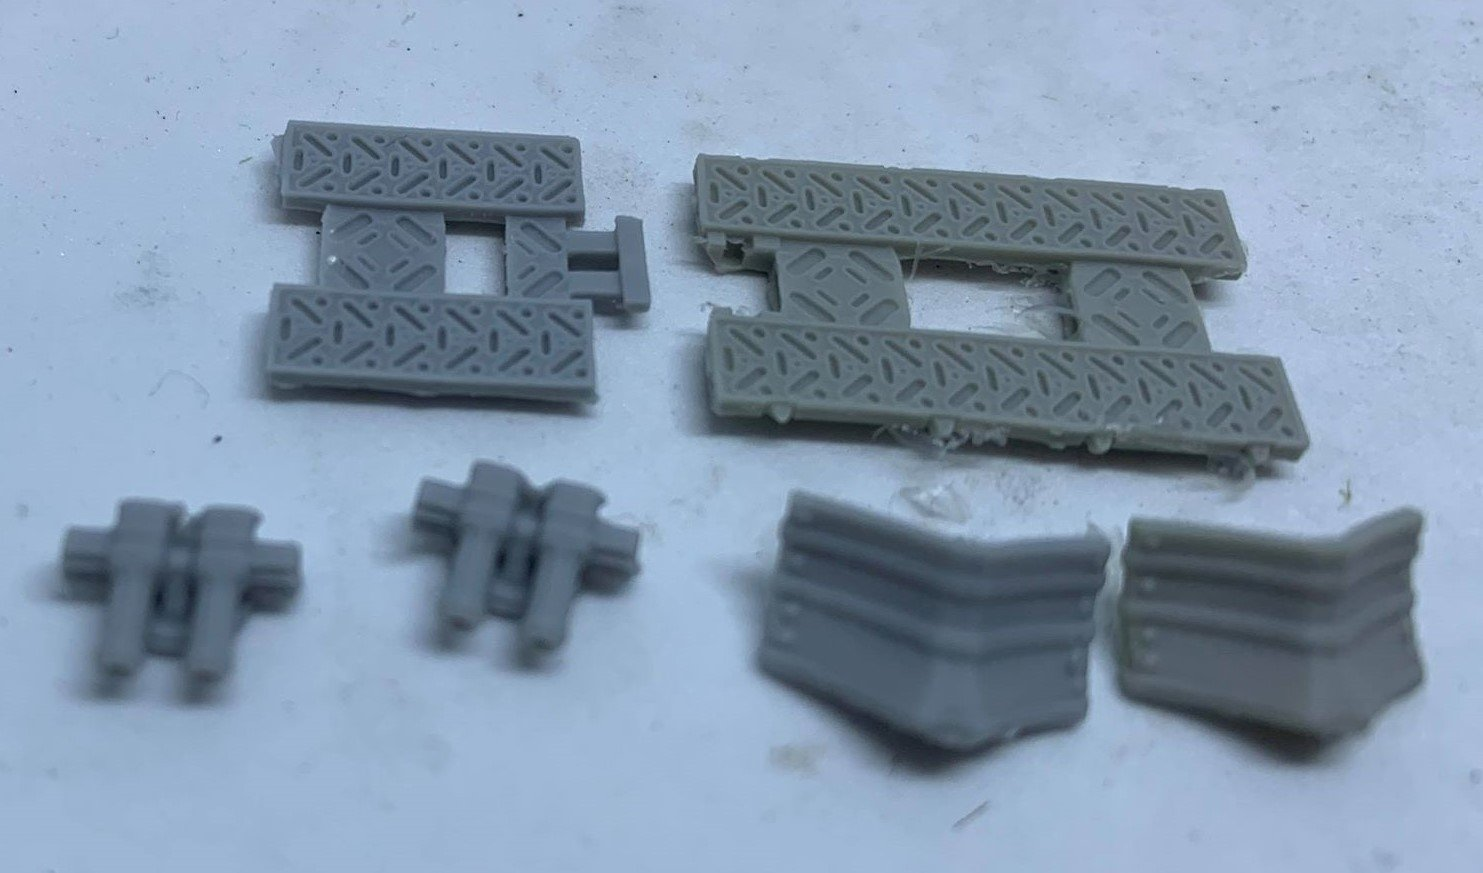 6-8mm Epically Scaled Goliath Upgrade Components